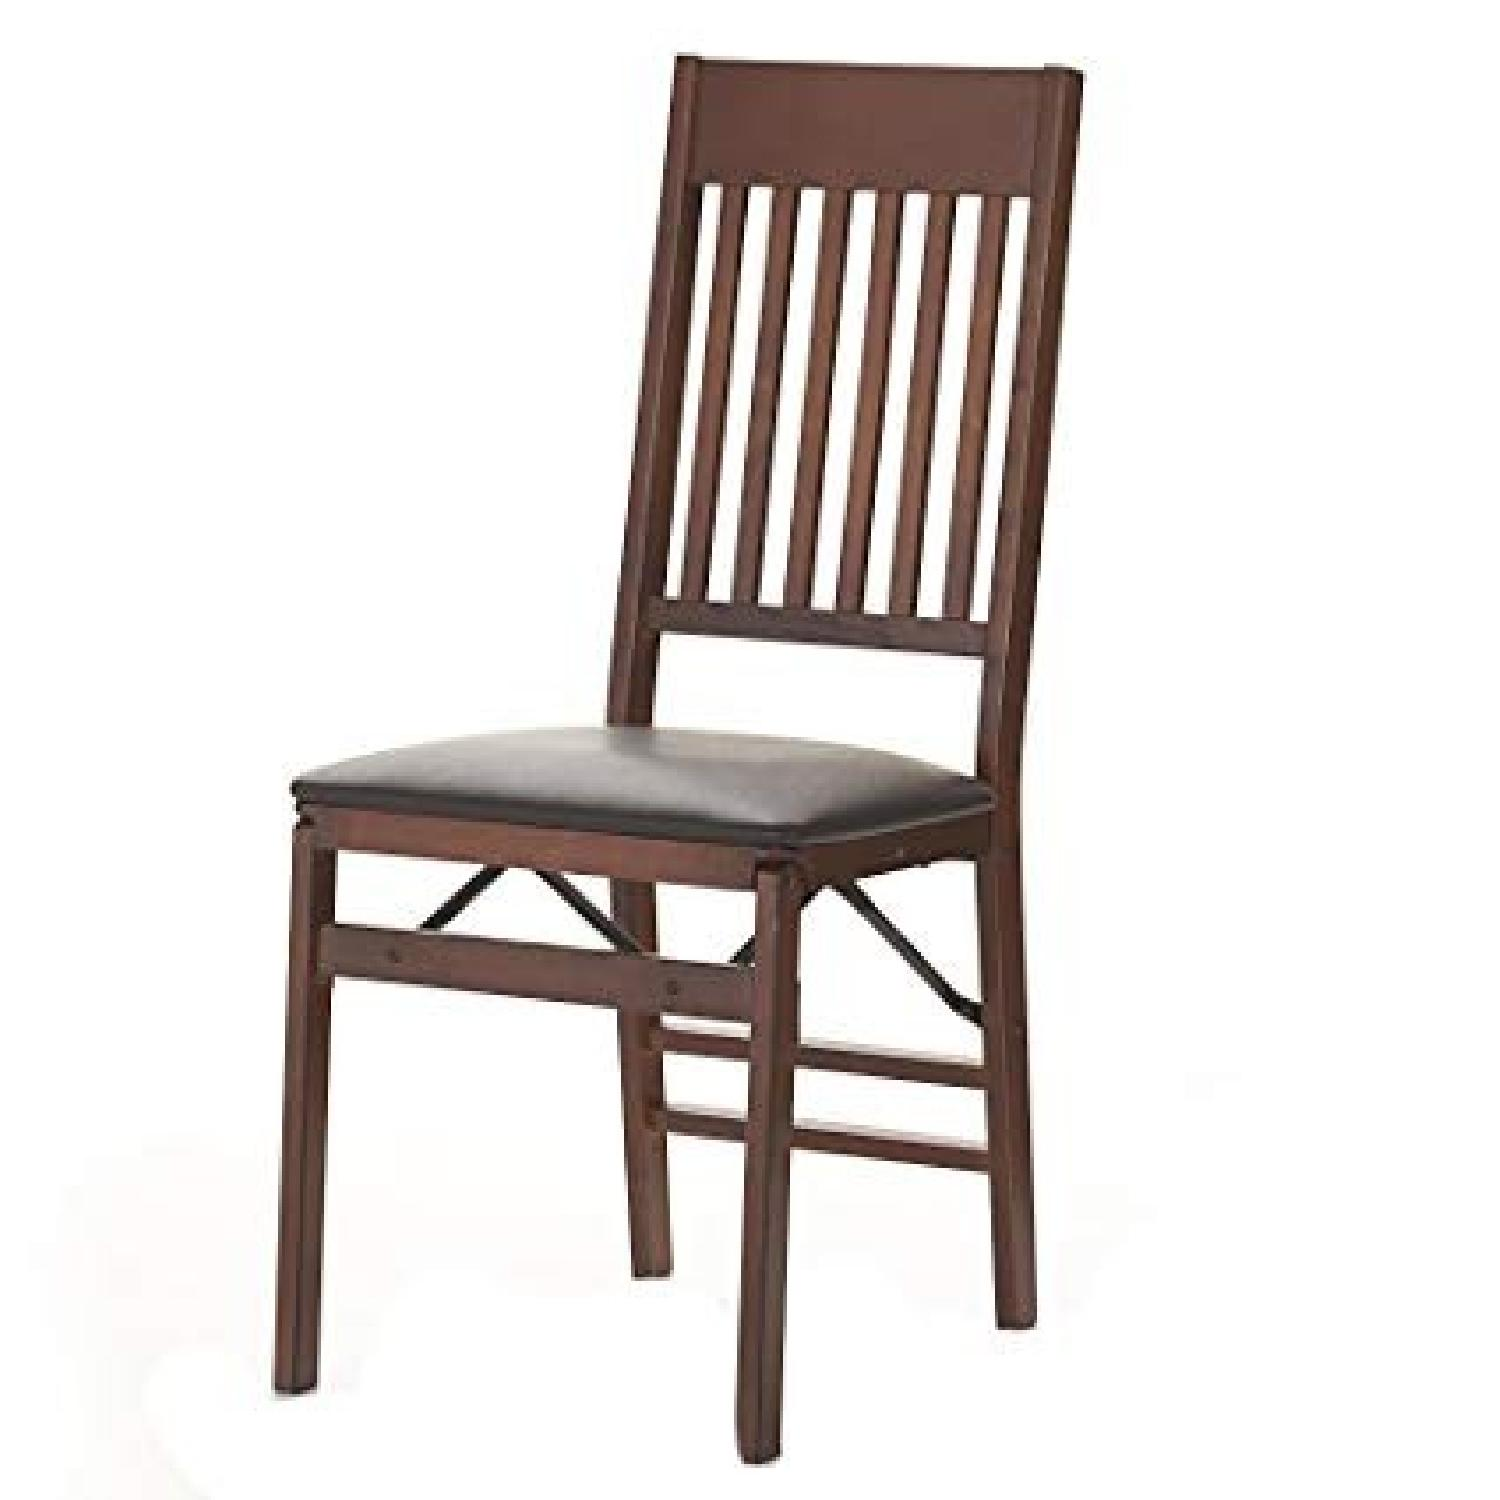 Linon Home Decor Mission Back Wood Folding Chairs - image-0